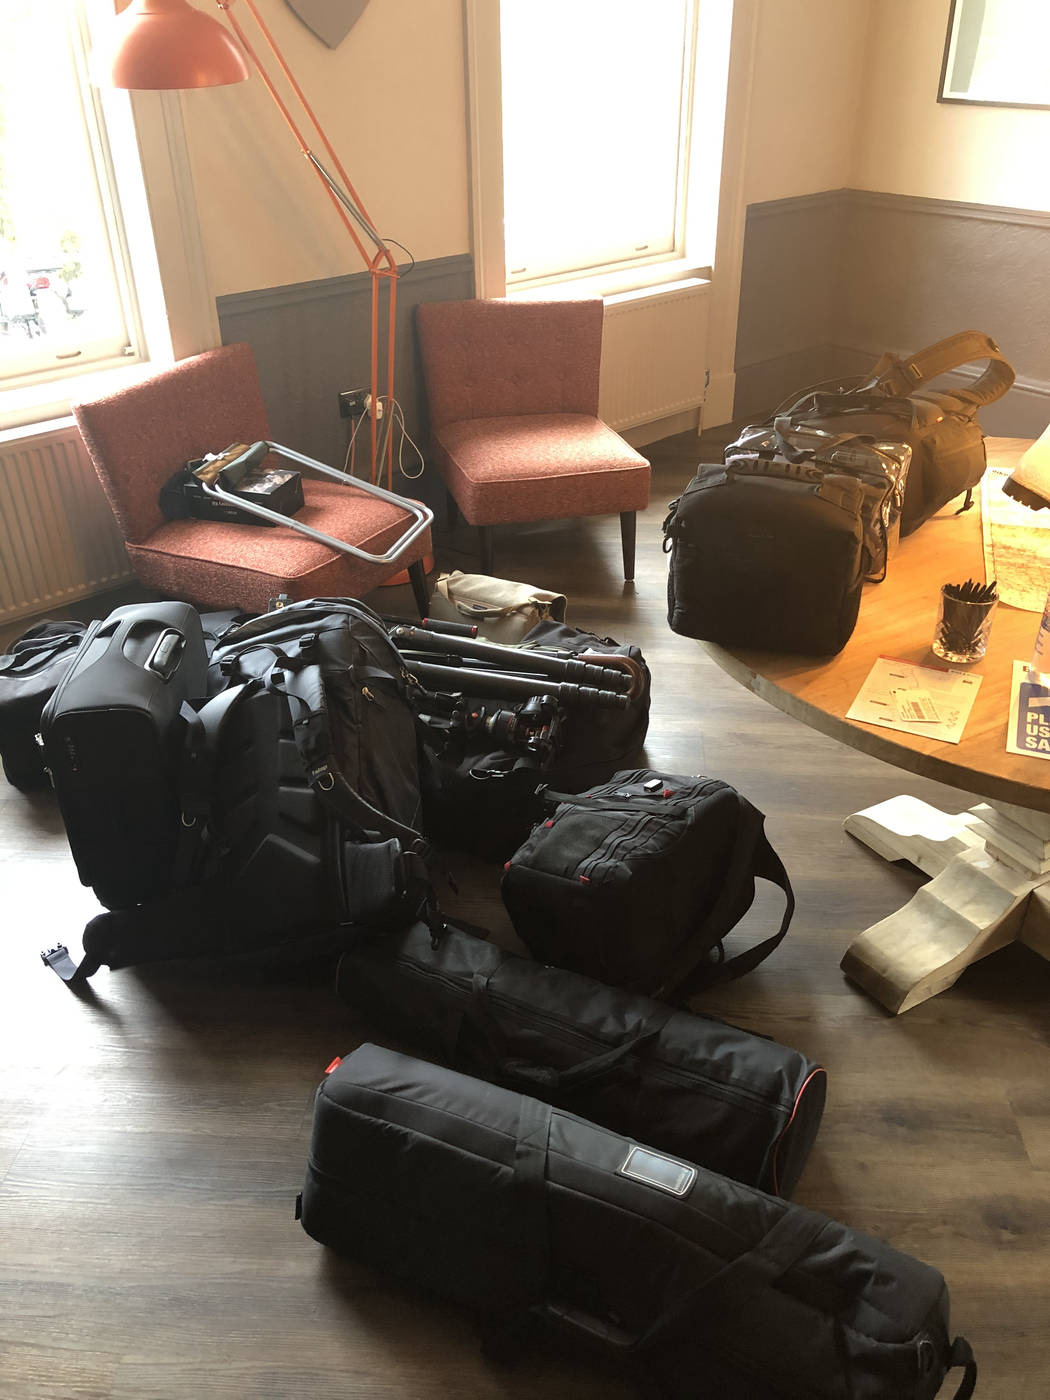 Travelling light! It takes a lot of gear to be prepared for different situations!